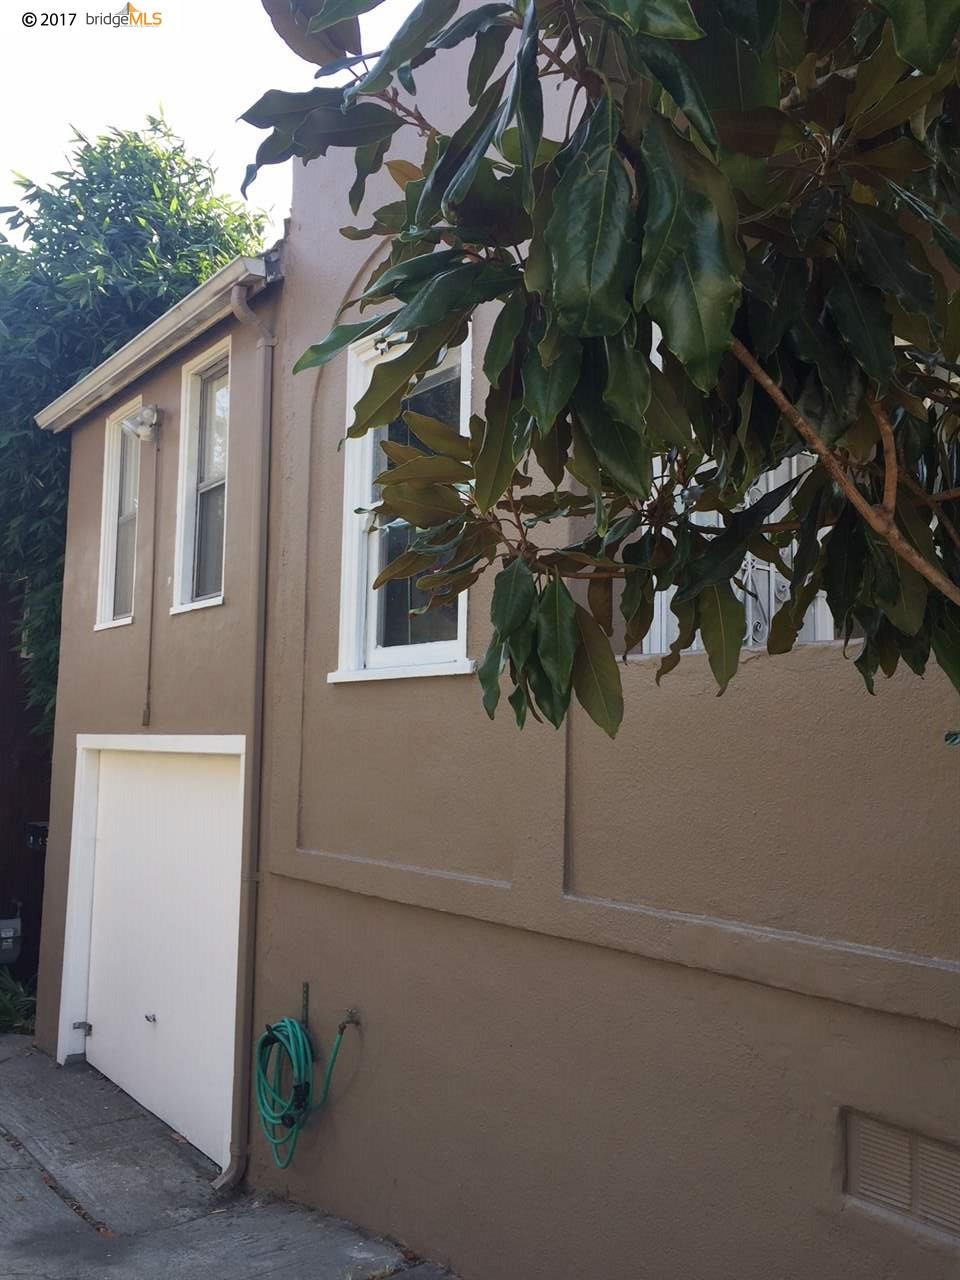 Additional photo for property listing at 2430 27Th Avenue 2430 27Th Avenue Oakland, Kalifornien 94601 Vereinigte Staaten